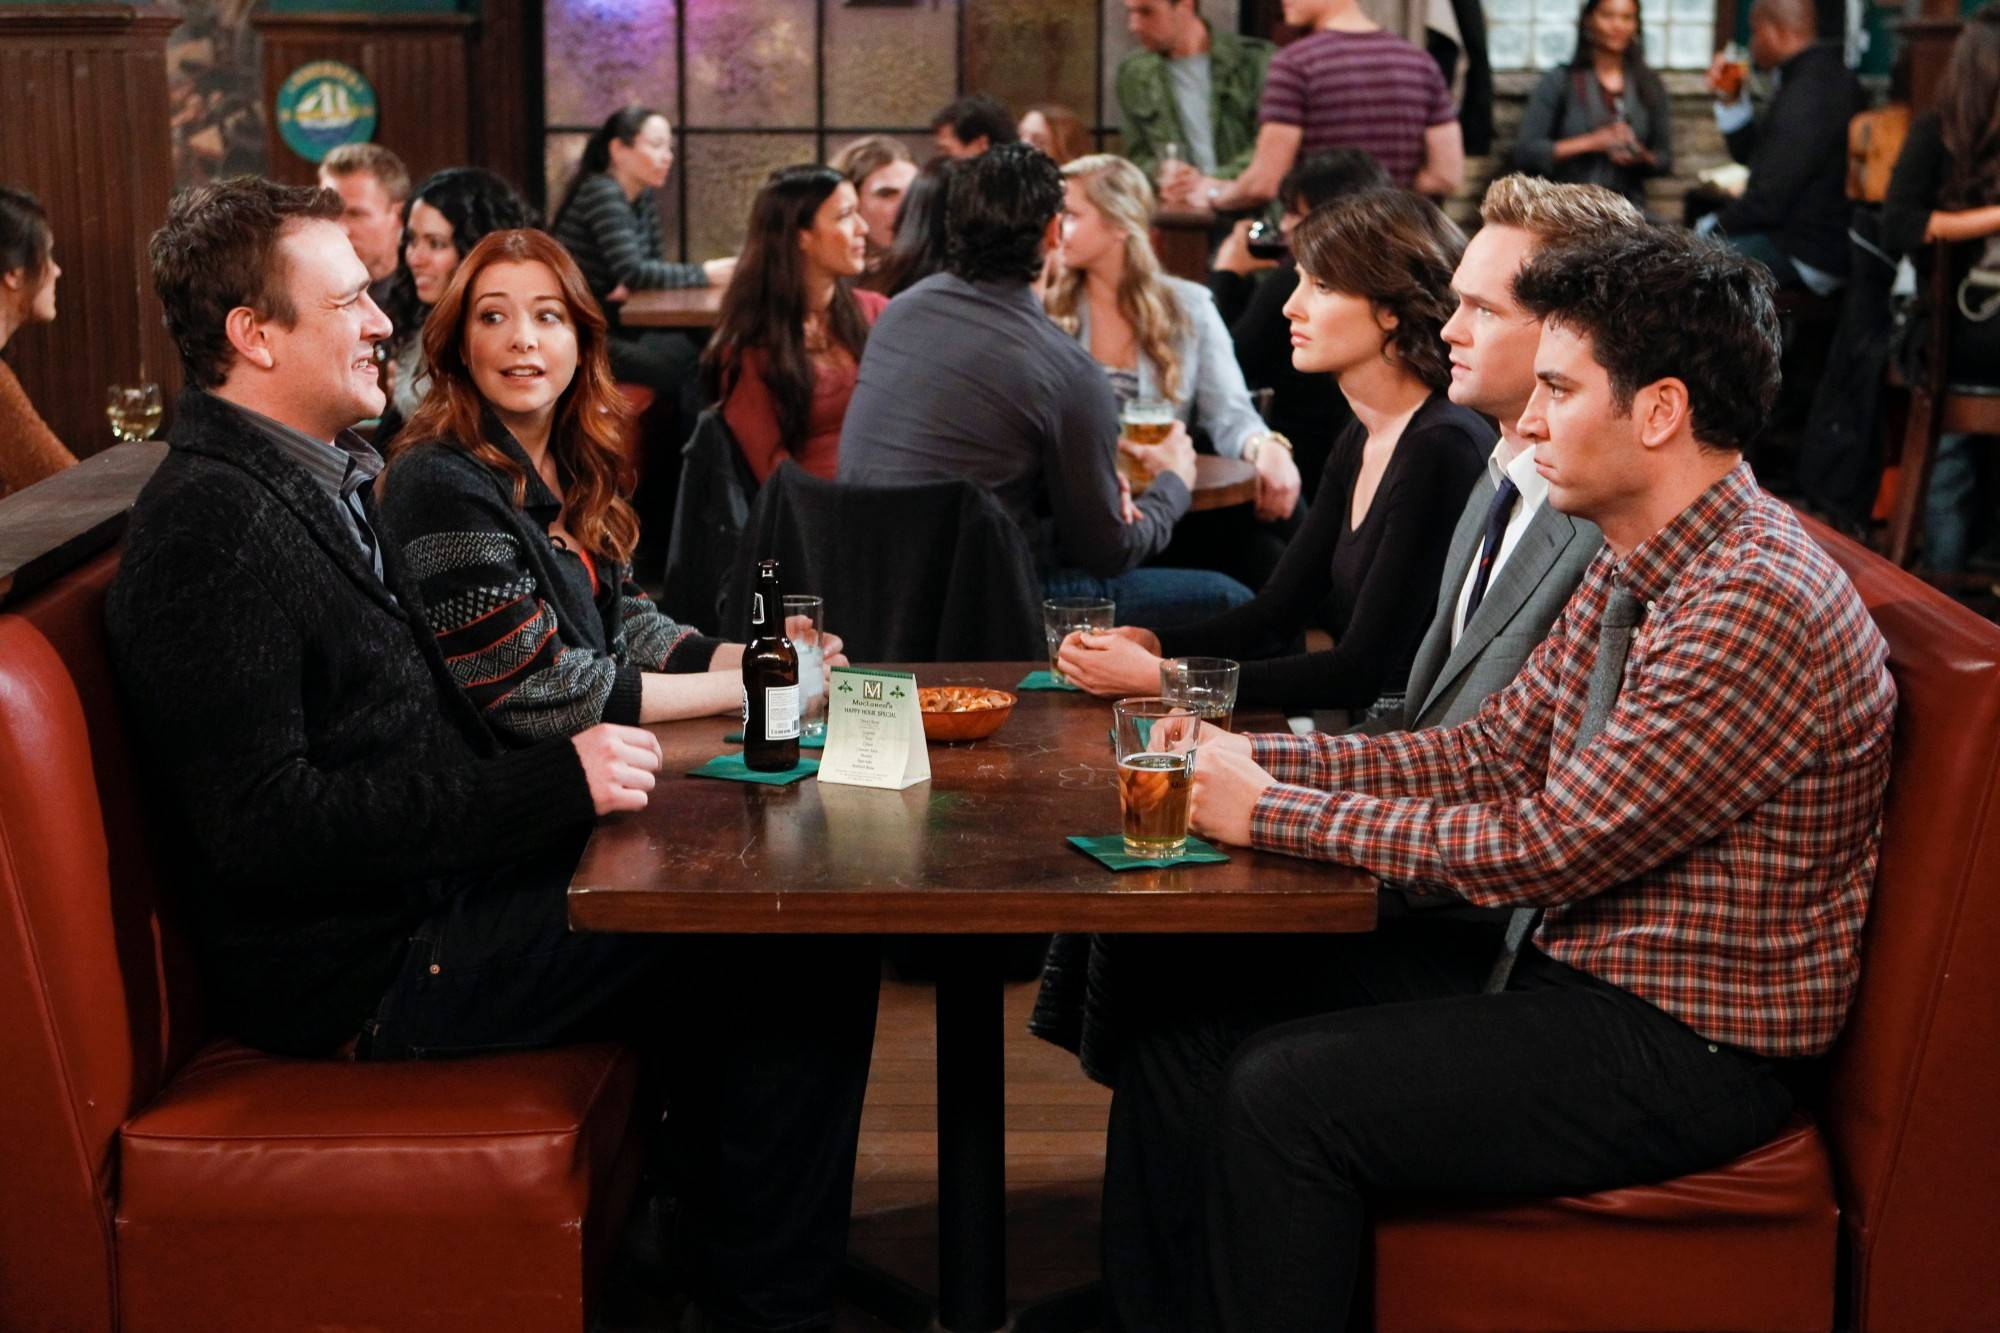 "Jason Segel, Alyson Hannigan, Cobie Smulders, Neil Patrick Harris and Josh Radnor share their lives in ""How I Met Your Mother."" The series opened with kids on a couch impatiently listening to narrator Bob Saget, as Ted circa 2030, explains how their parents met."